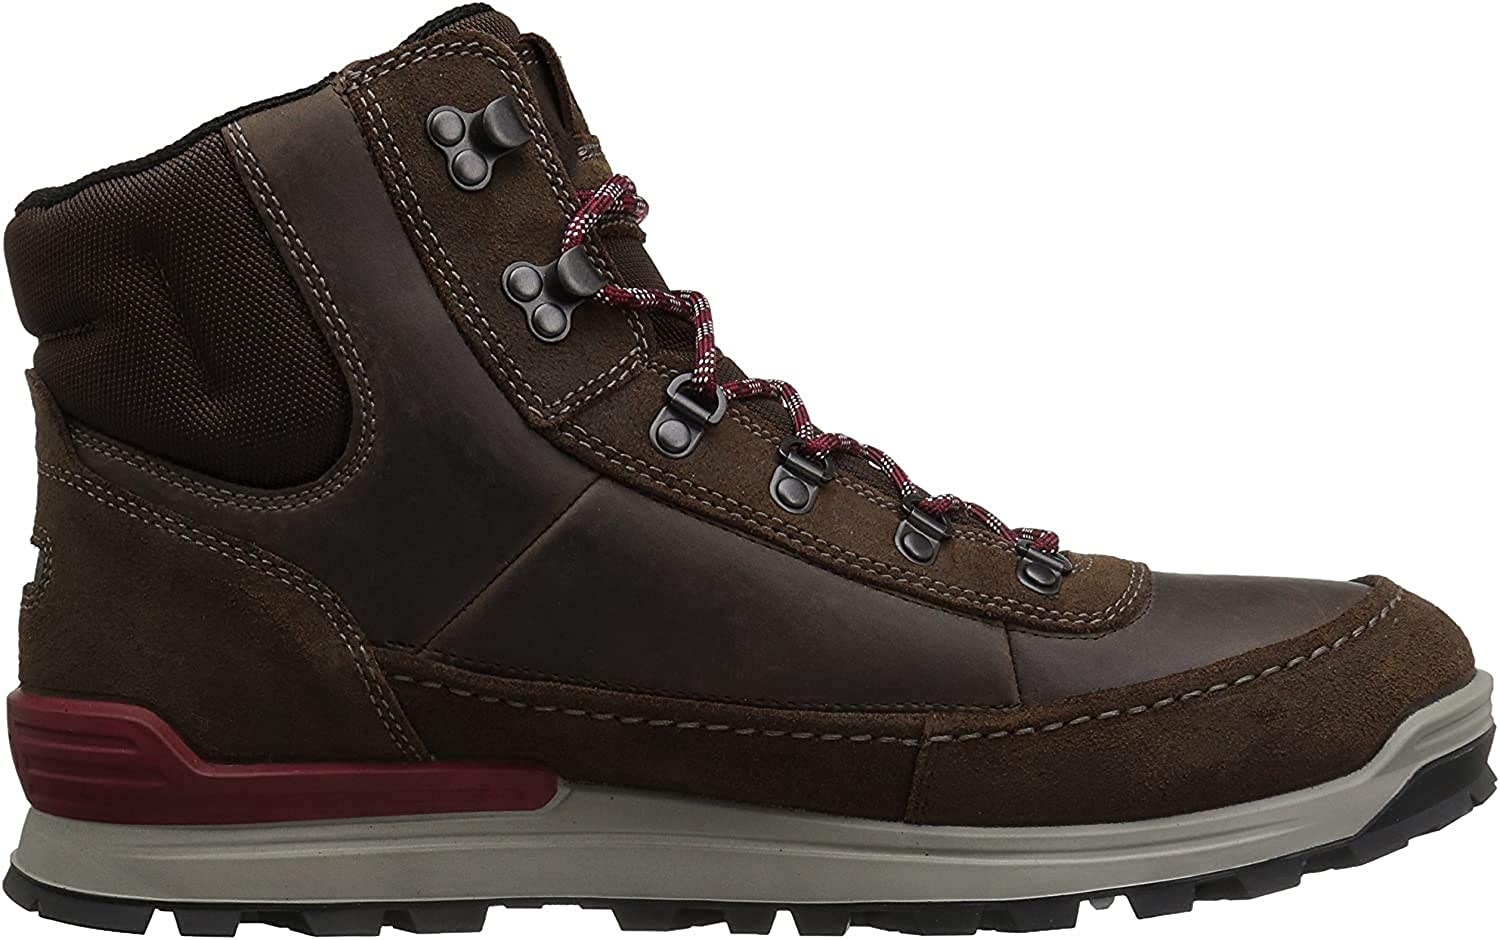 ECCO Men's Oregon High Gore-Tex Hiking Boot